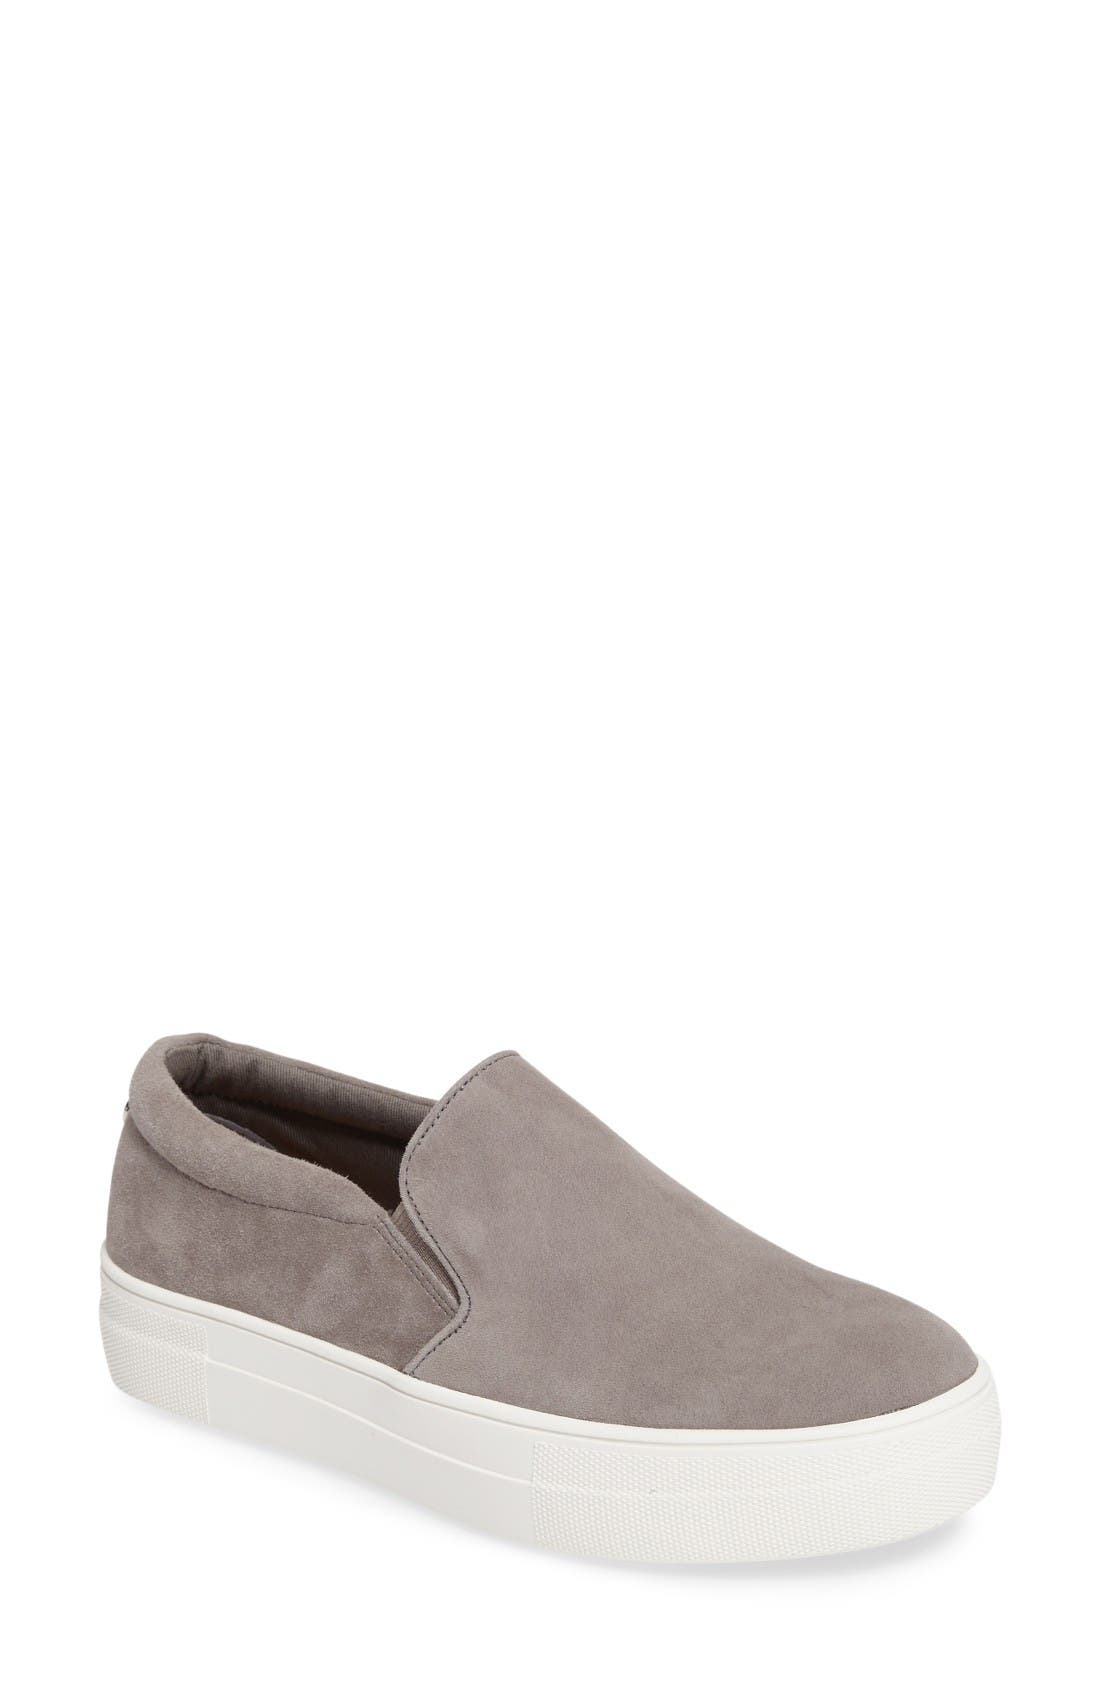 Gills Platform Slip-On Sneaker,                         Main,                         color, Grey Suede